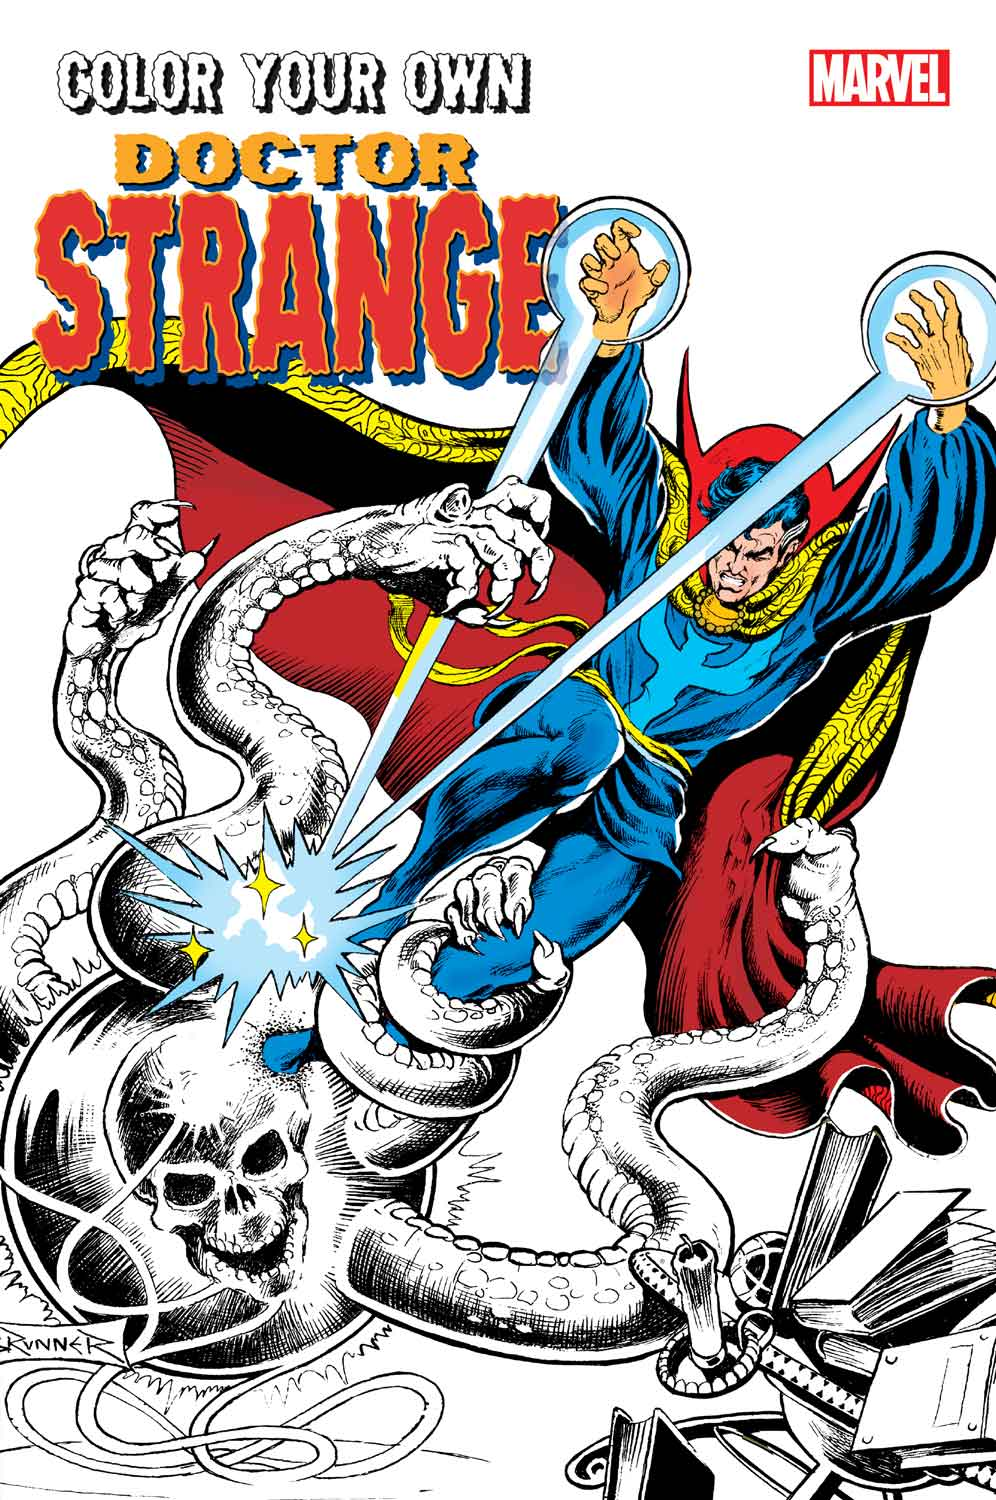 color your own doctor strange - Marvel Coloring Books